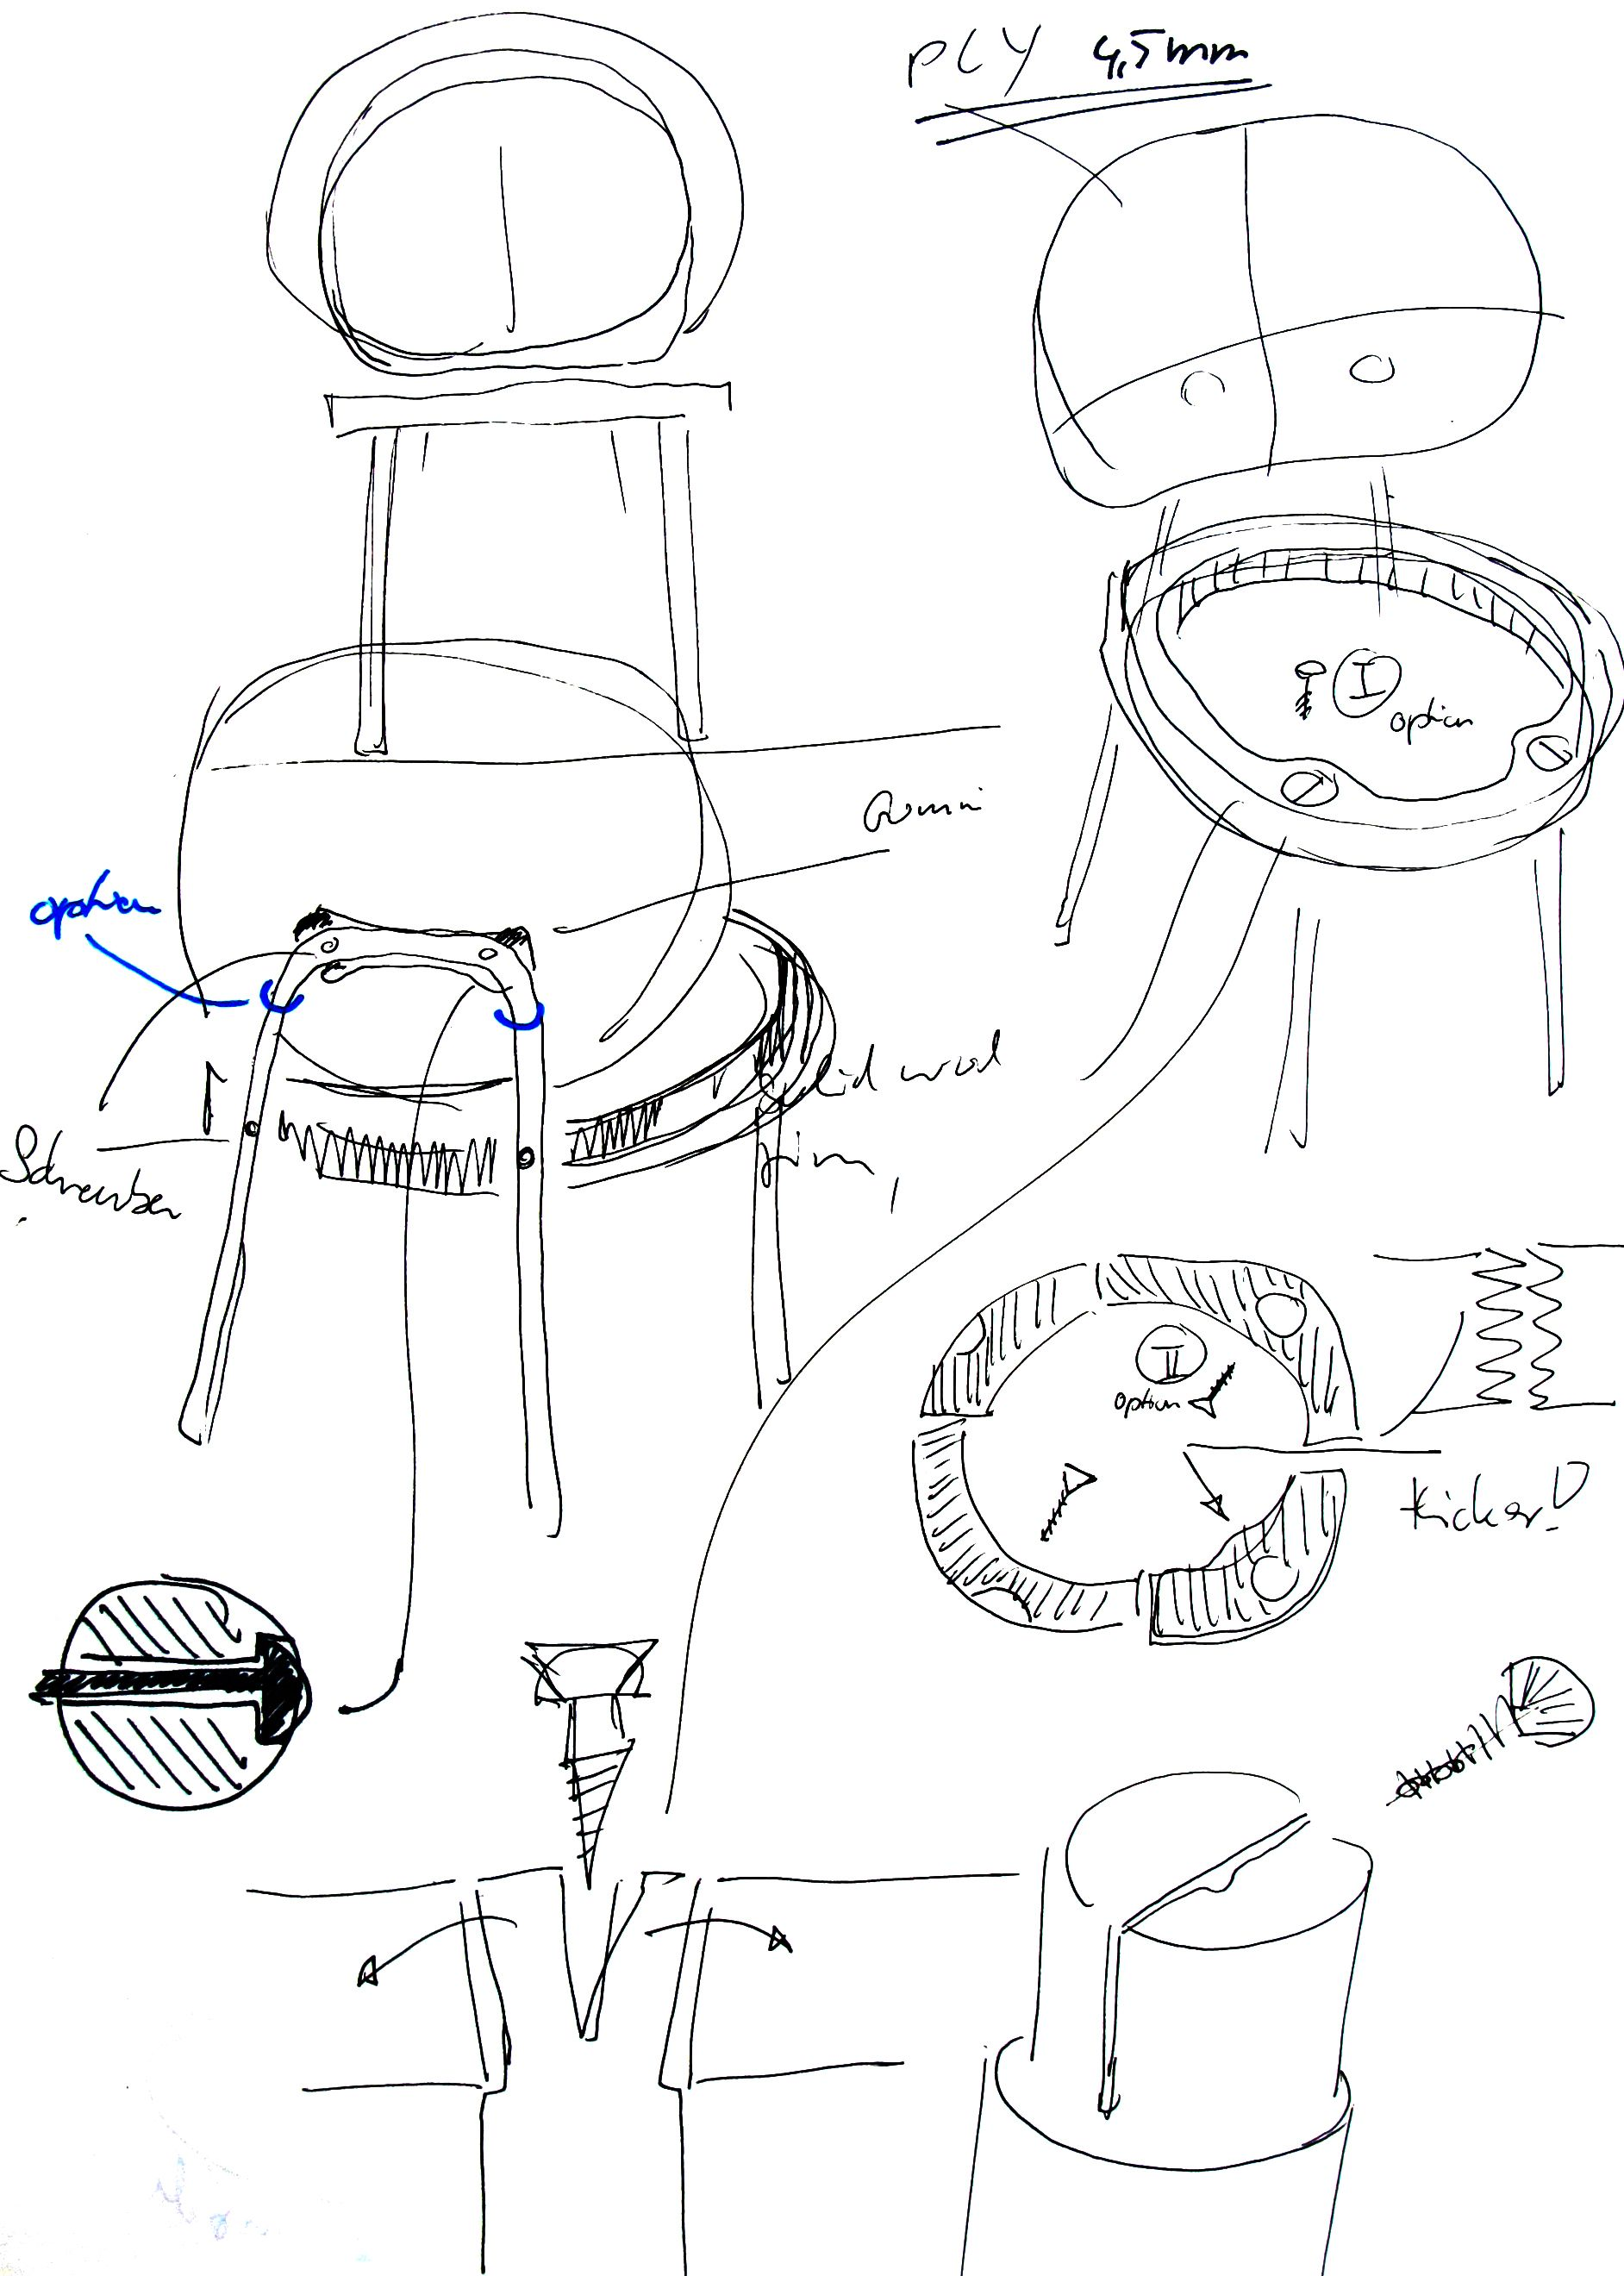 Kitt Flat Pack Chair For Hay Making Of Sketches By